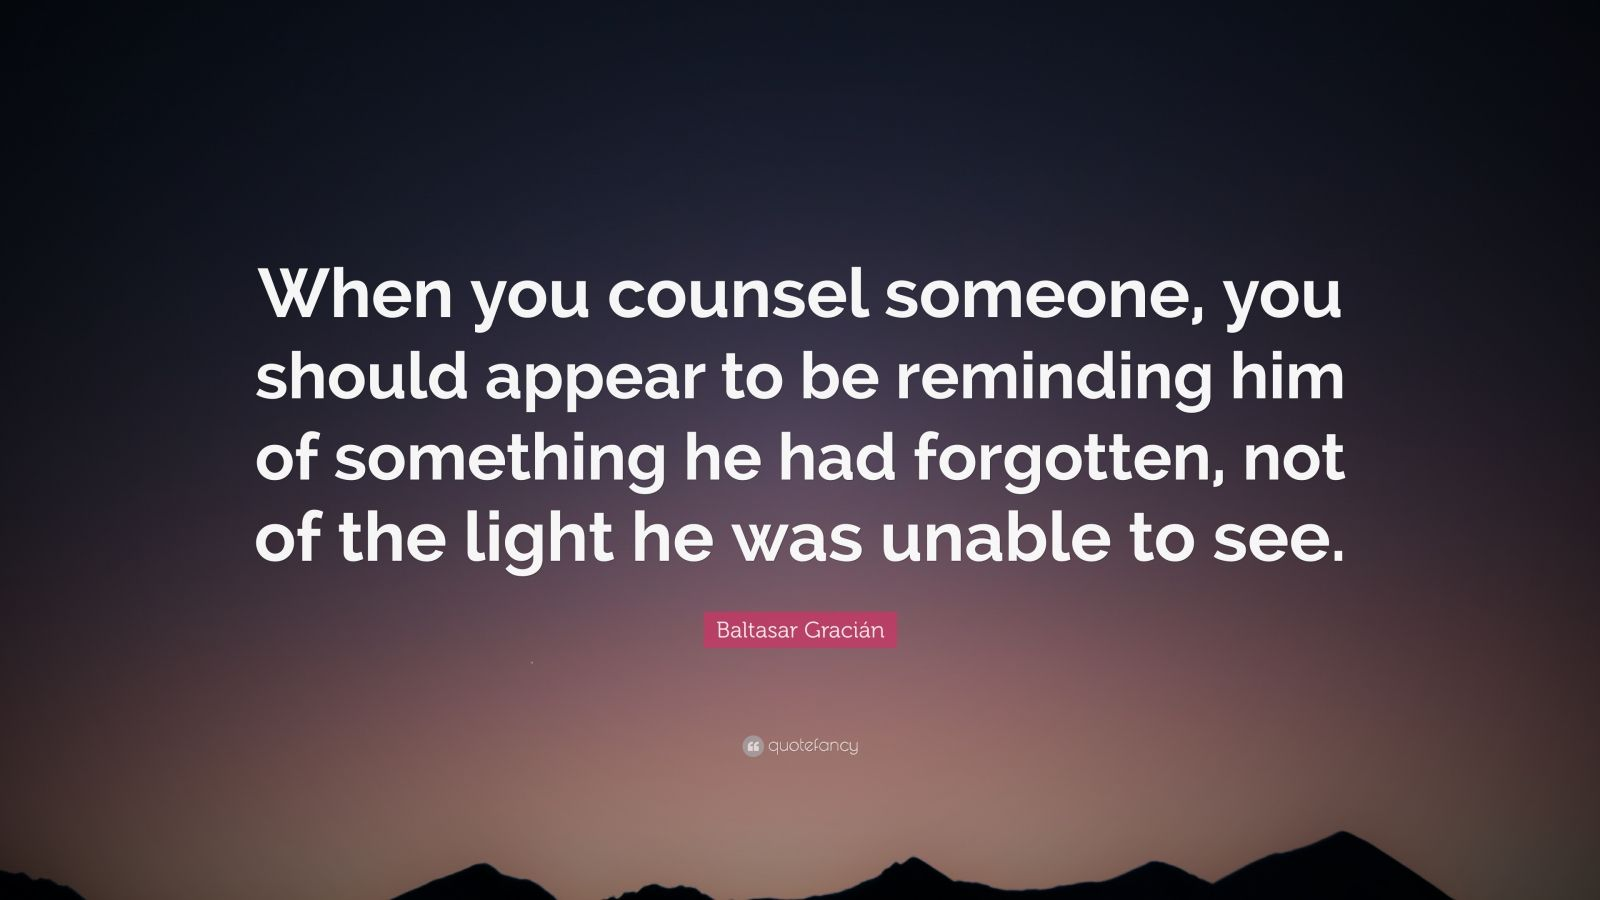 """Baltasar Gracián Quote: """"When you counsel someone, you should appear to be reminding him of something he had forgotten, not of the light he was unable to see."""""""